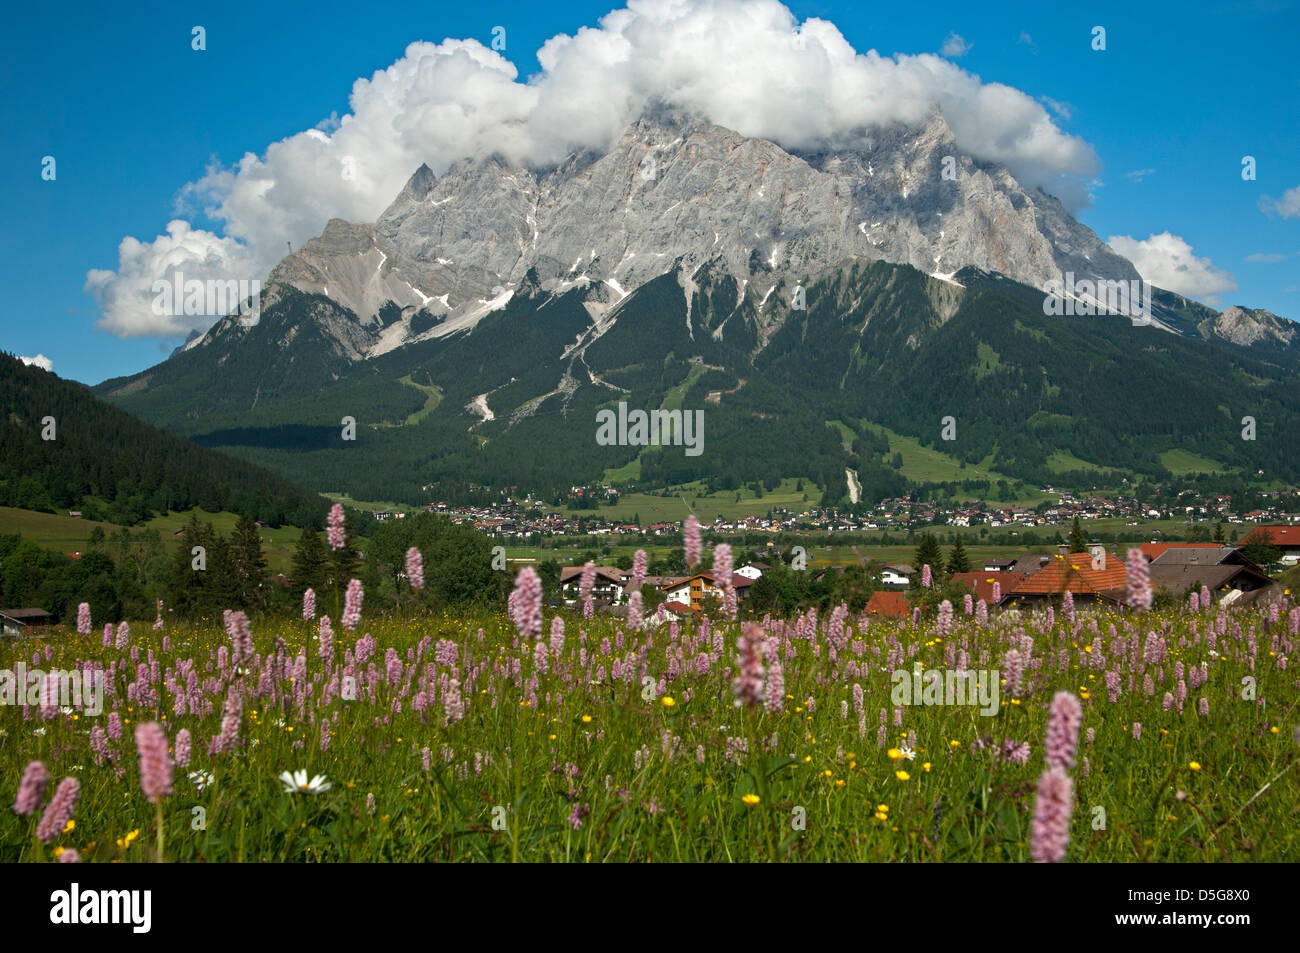 Cumulus clouds hanging above the Wetterstein Mountains, Ehrwald, Tyrol, Austria - Stock Image